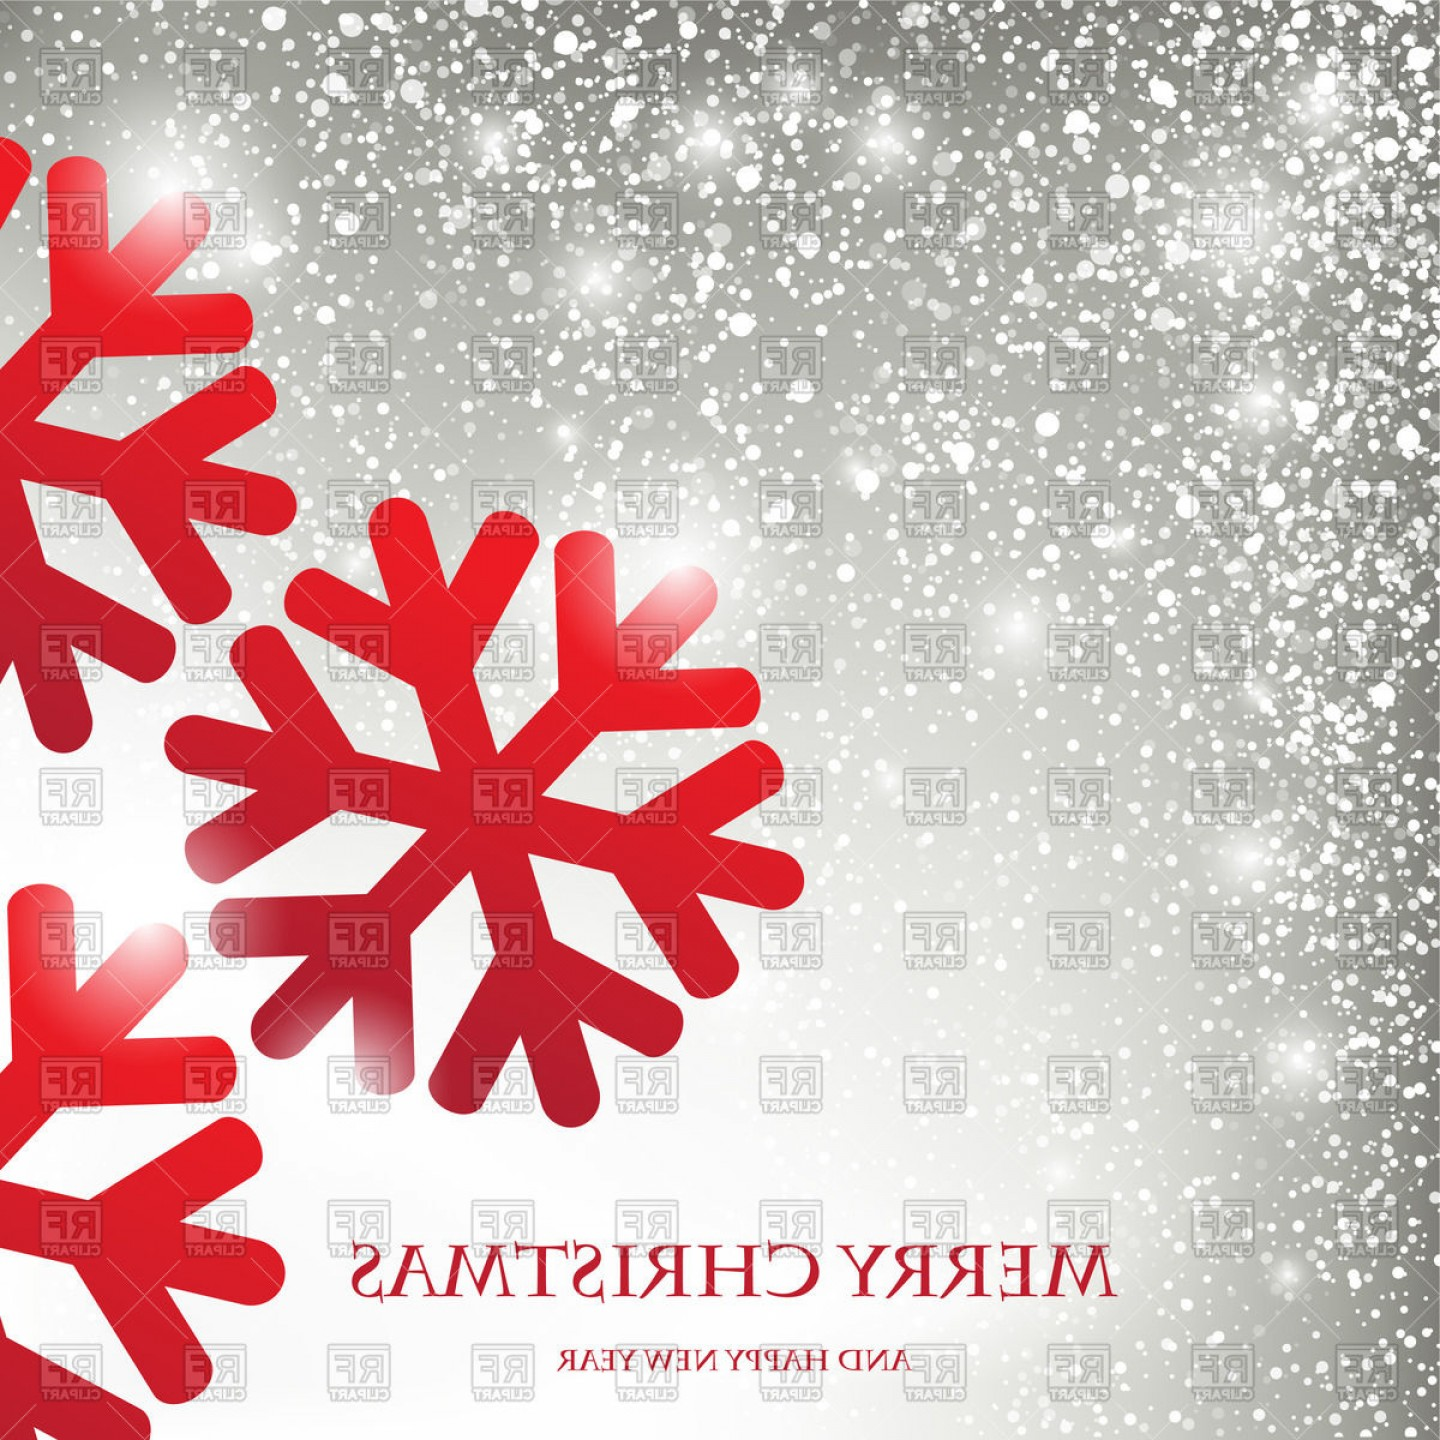 Snowflake Border Vector Art: Winter Holiday Greeting Card With Snowflakes And Snowfall Vector Clipart